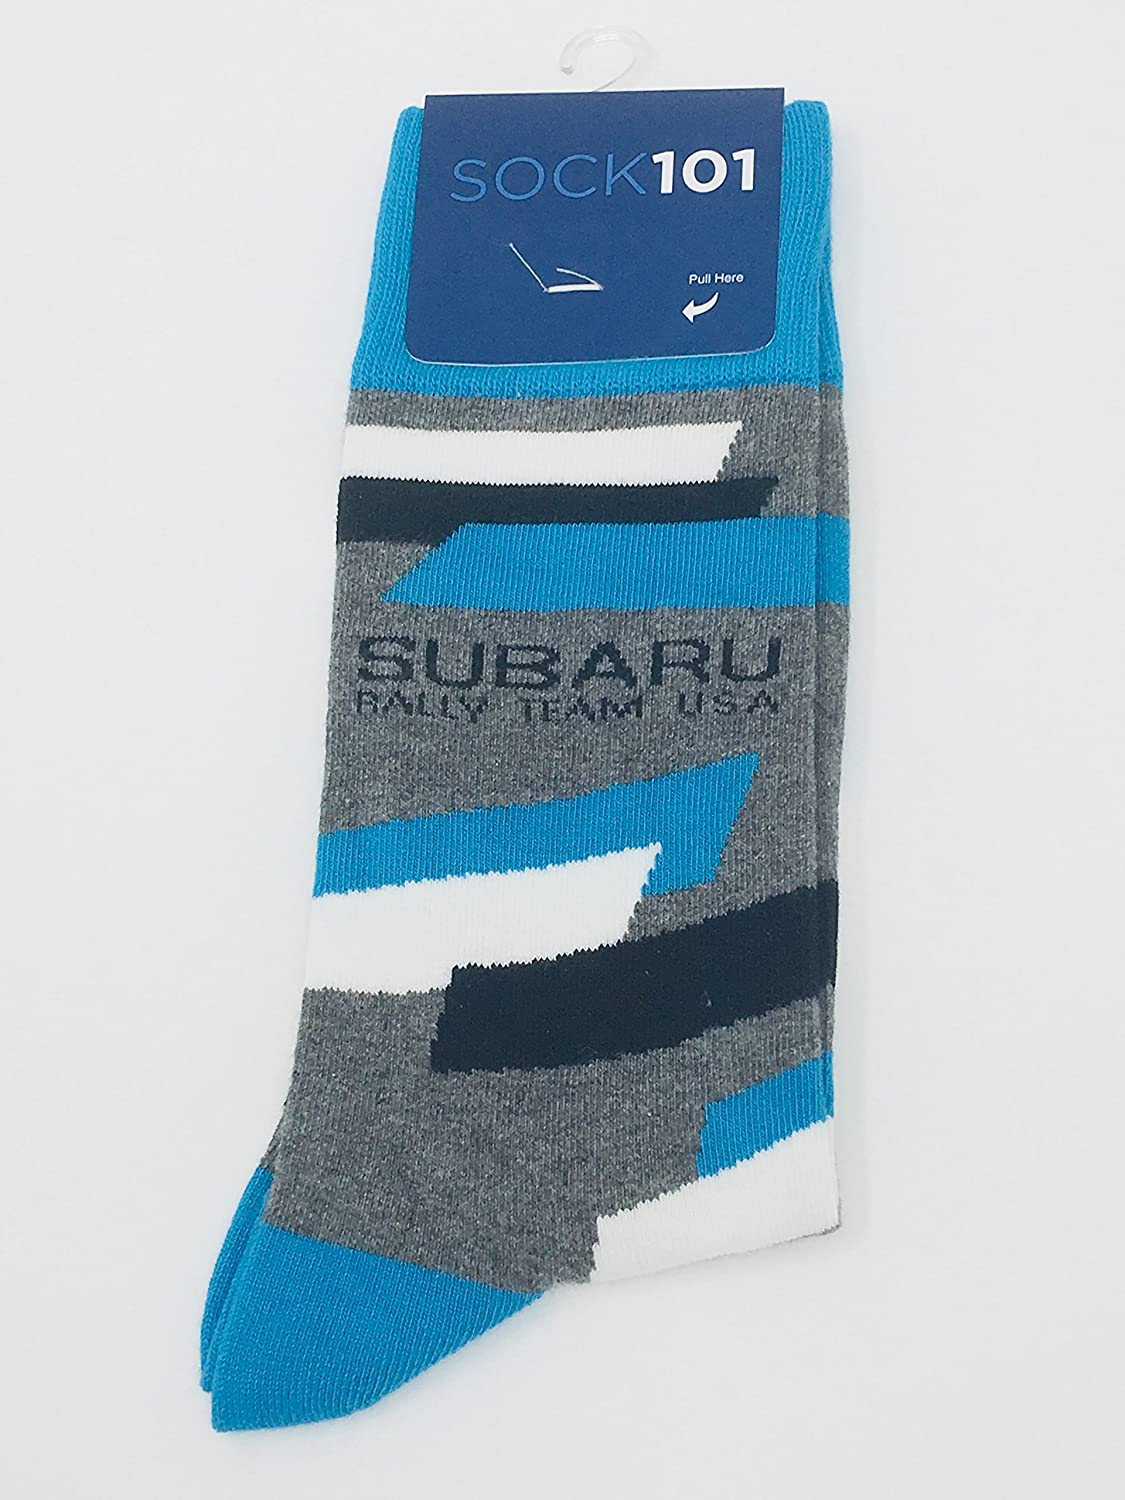 SUBARU Genuine Socks Rally Team USA Logo Sti WRX Impreza Official Blue Cotton